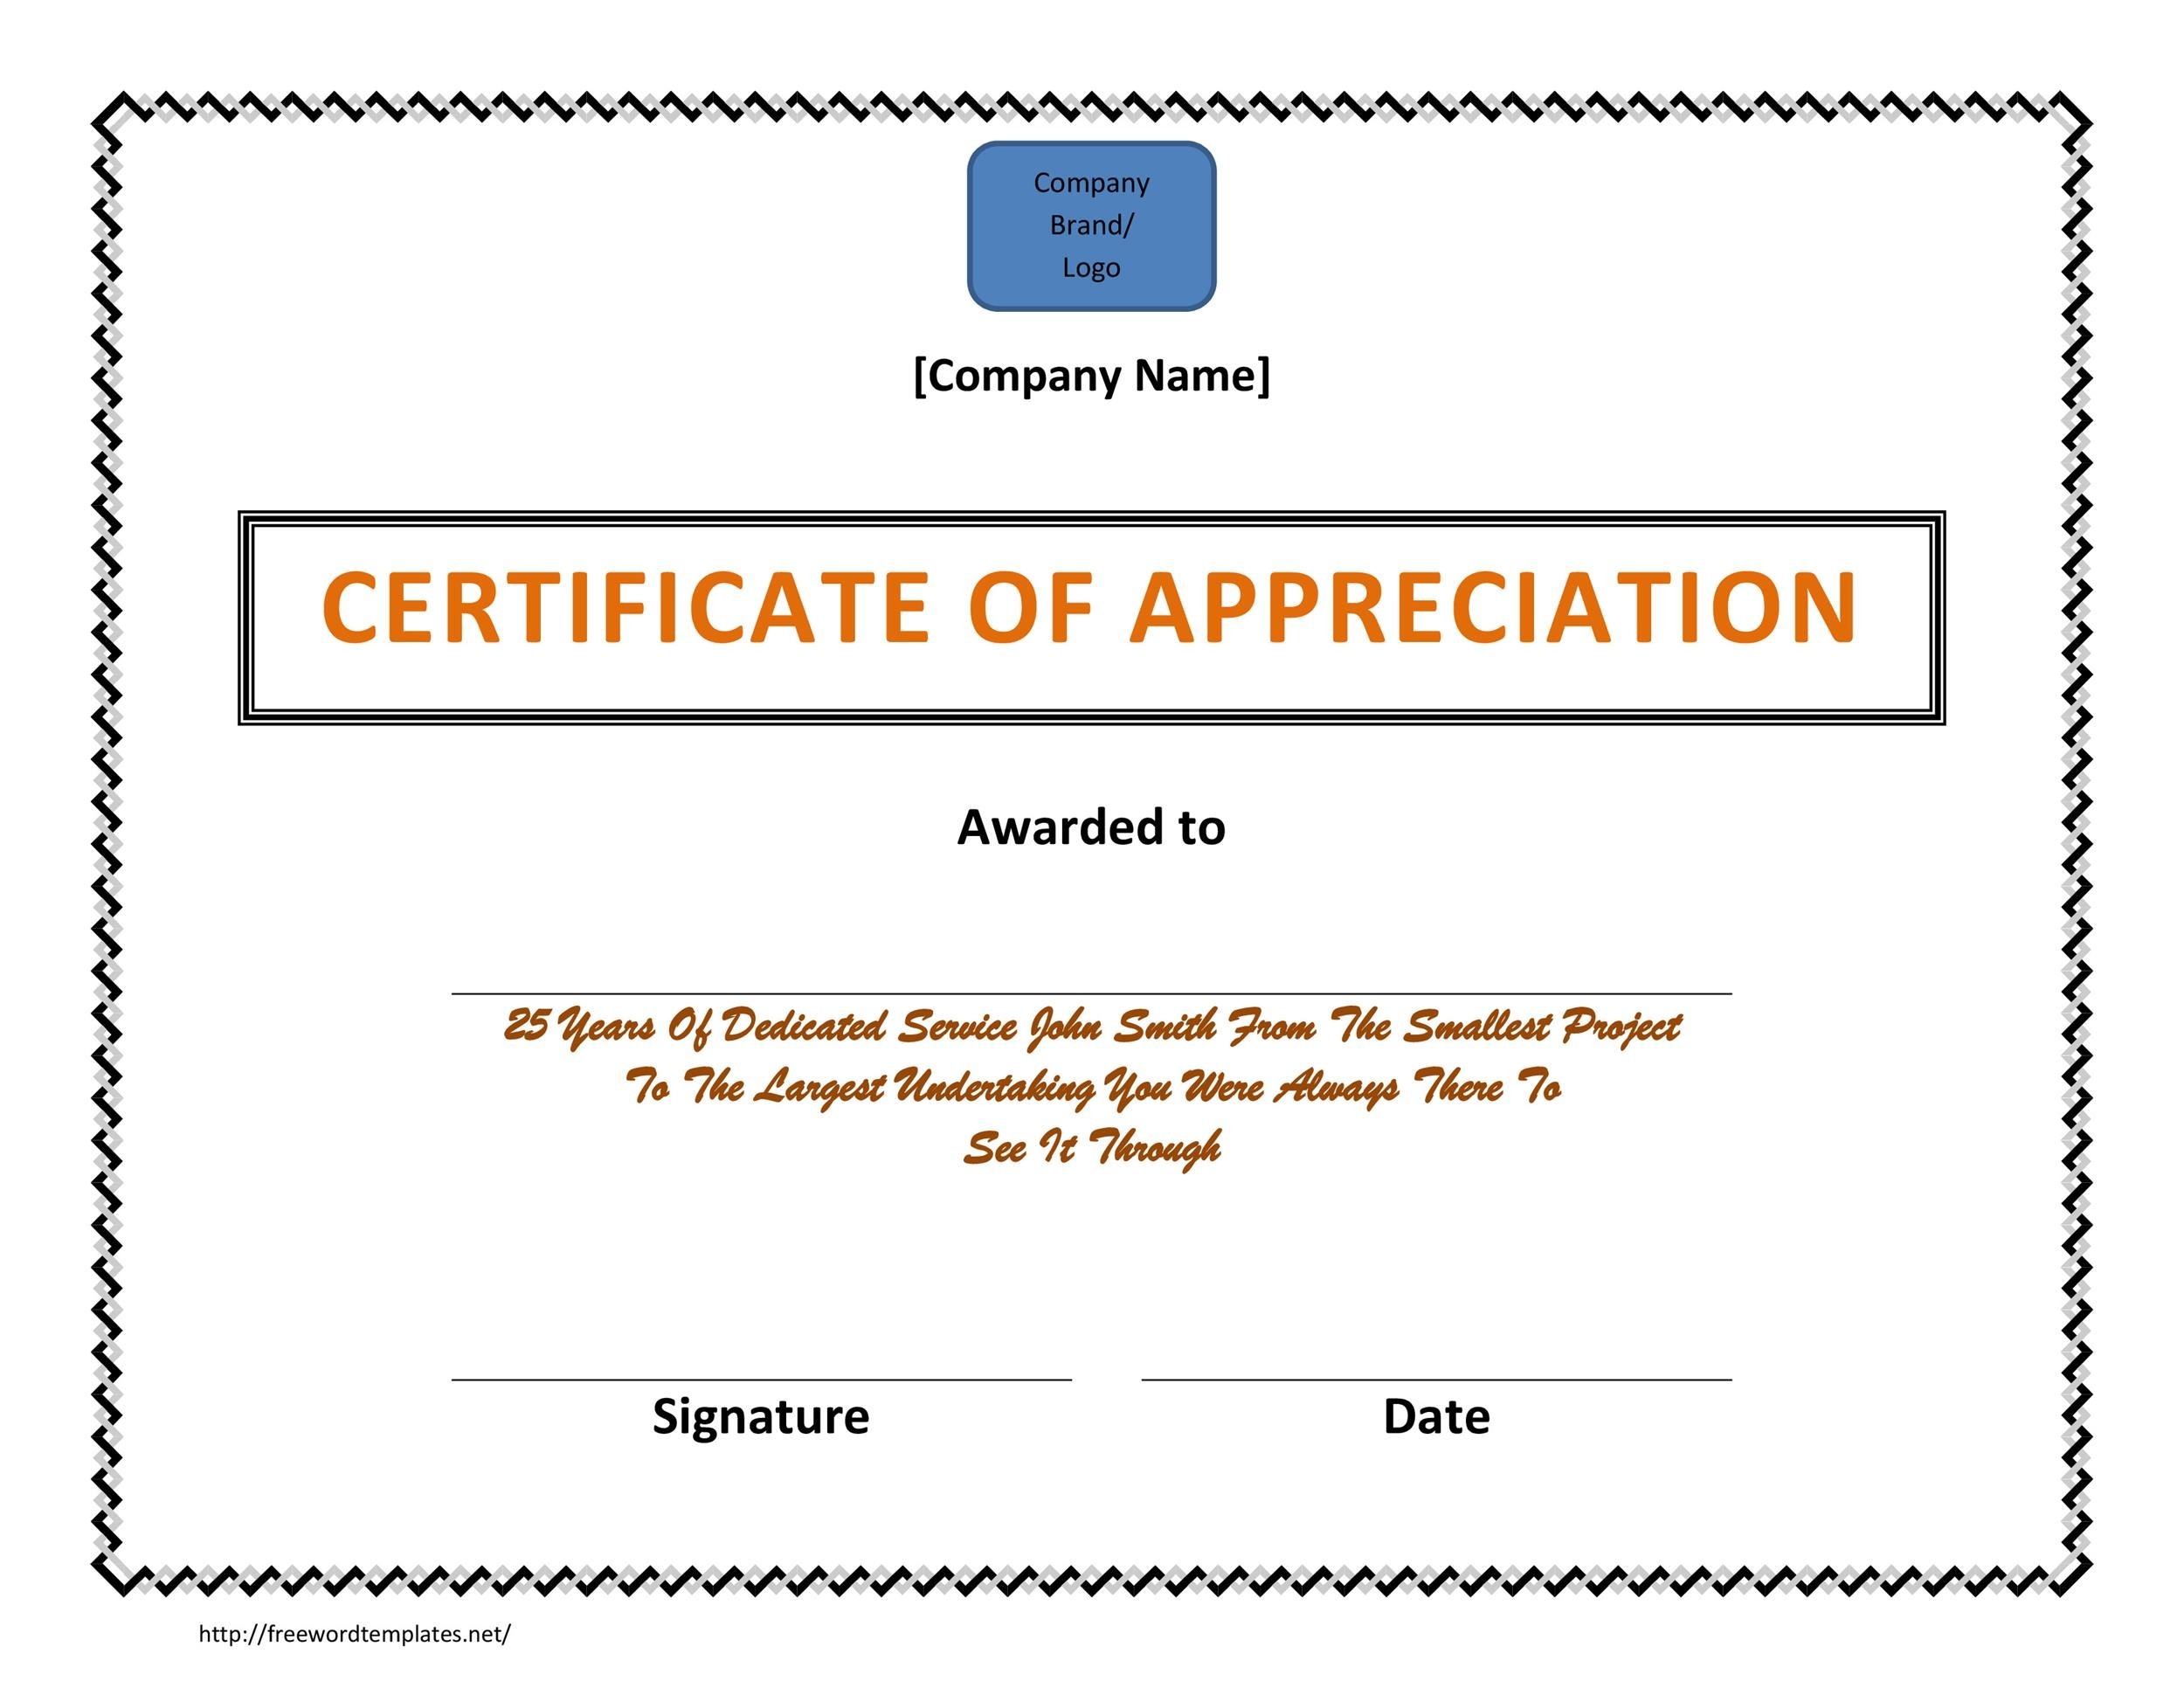 30 free certificate of appreciation templates and letters free certificate of appreciation 05 spiritdancerdesigns